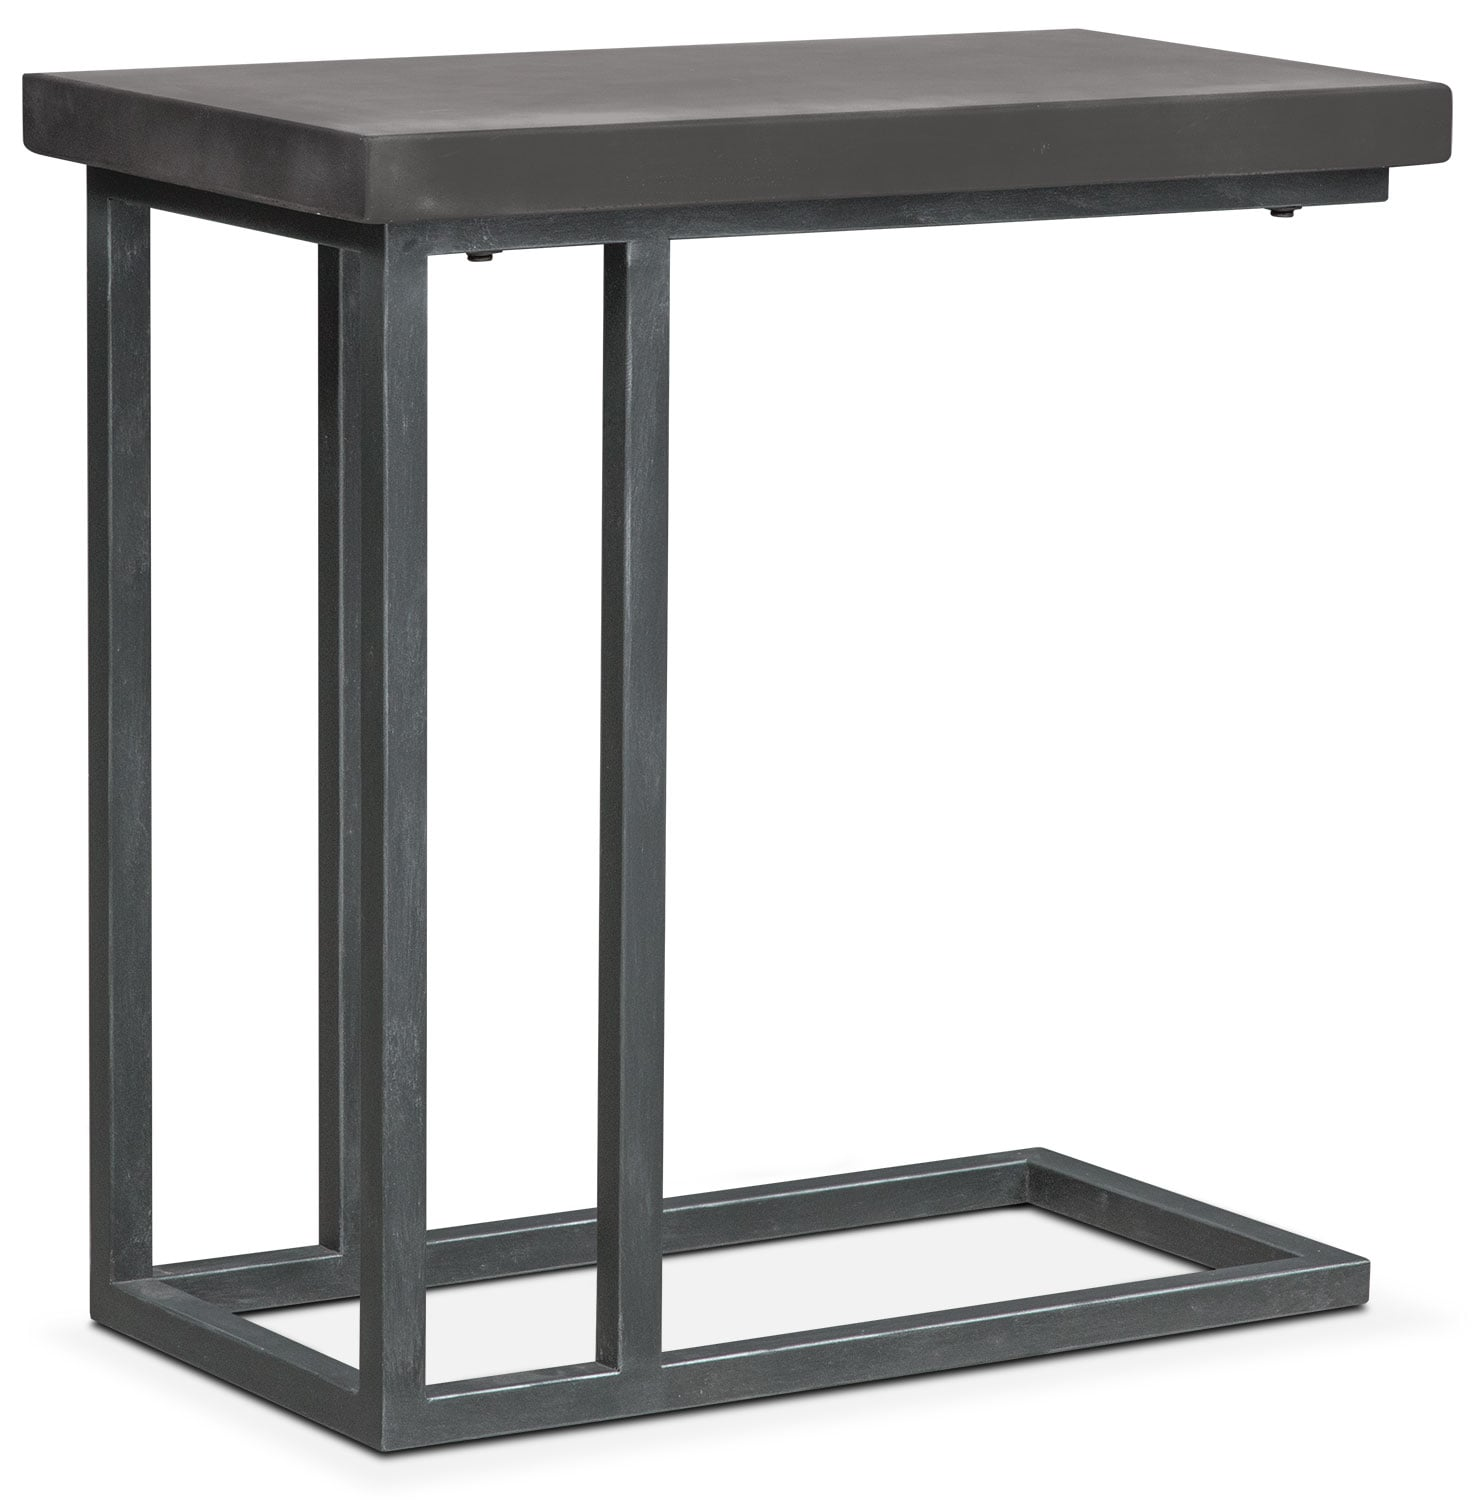 Conde Side Table Concrete Value City Furniture : 489796 from www.valuecityfurniture.com size 1481 x 1500 jpeg 141kB